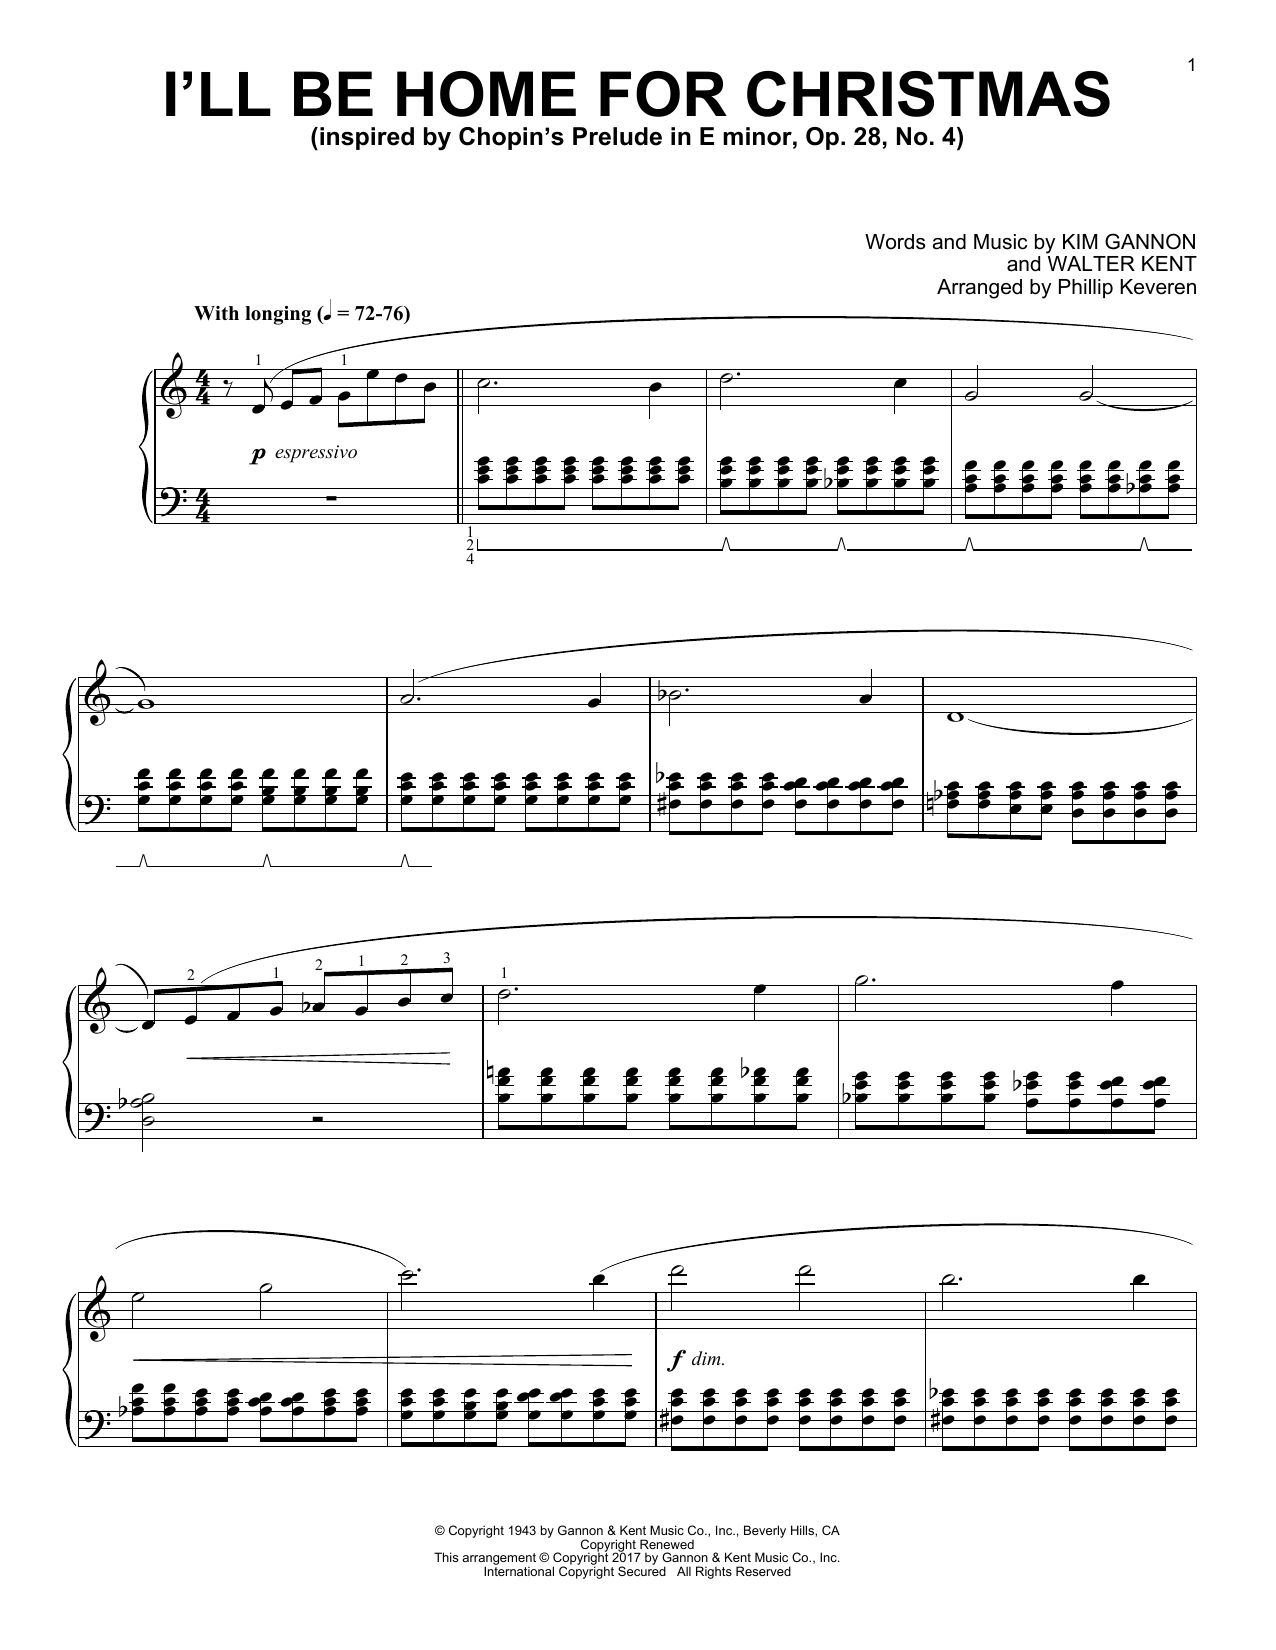 Kim Gannon I'll Be Home For Christmas [Classical version] (arr. Phillip Keveren) sheet music notes and chords. Download Printable PDF.